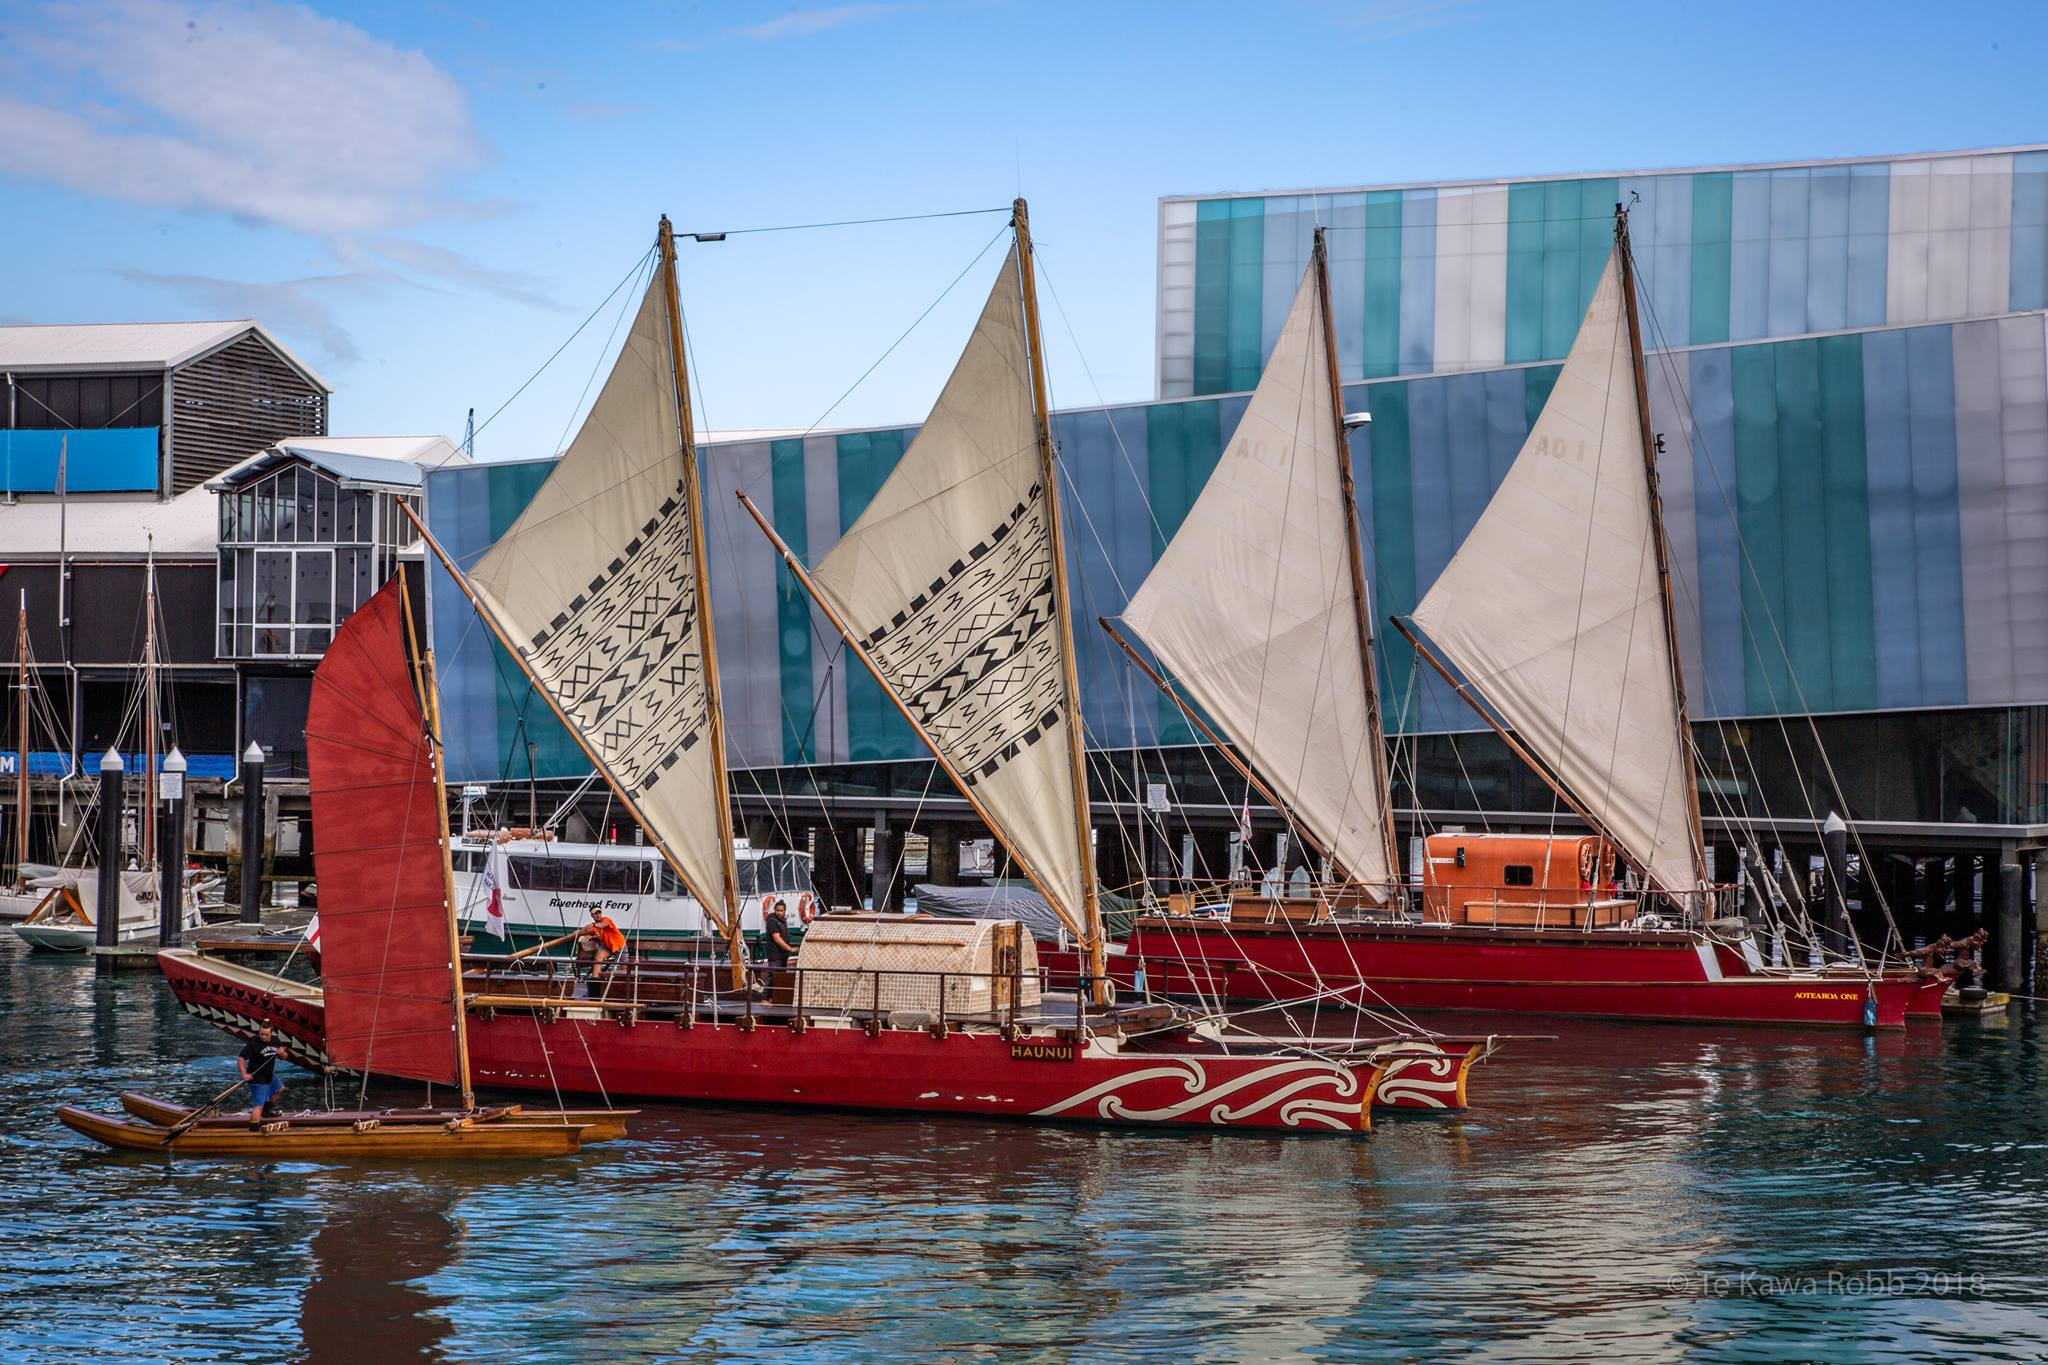 Pūmaiterangi, Haunui, and Aotearoa One, outside the New Zealand Maritime Museum in Tāmaki Makaurau (Auckland).